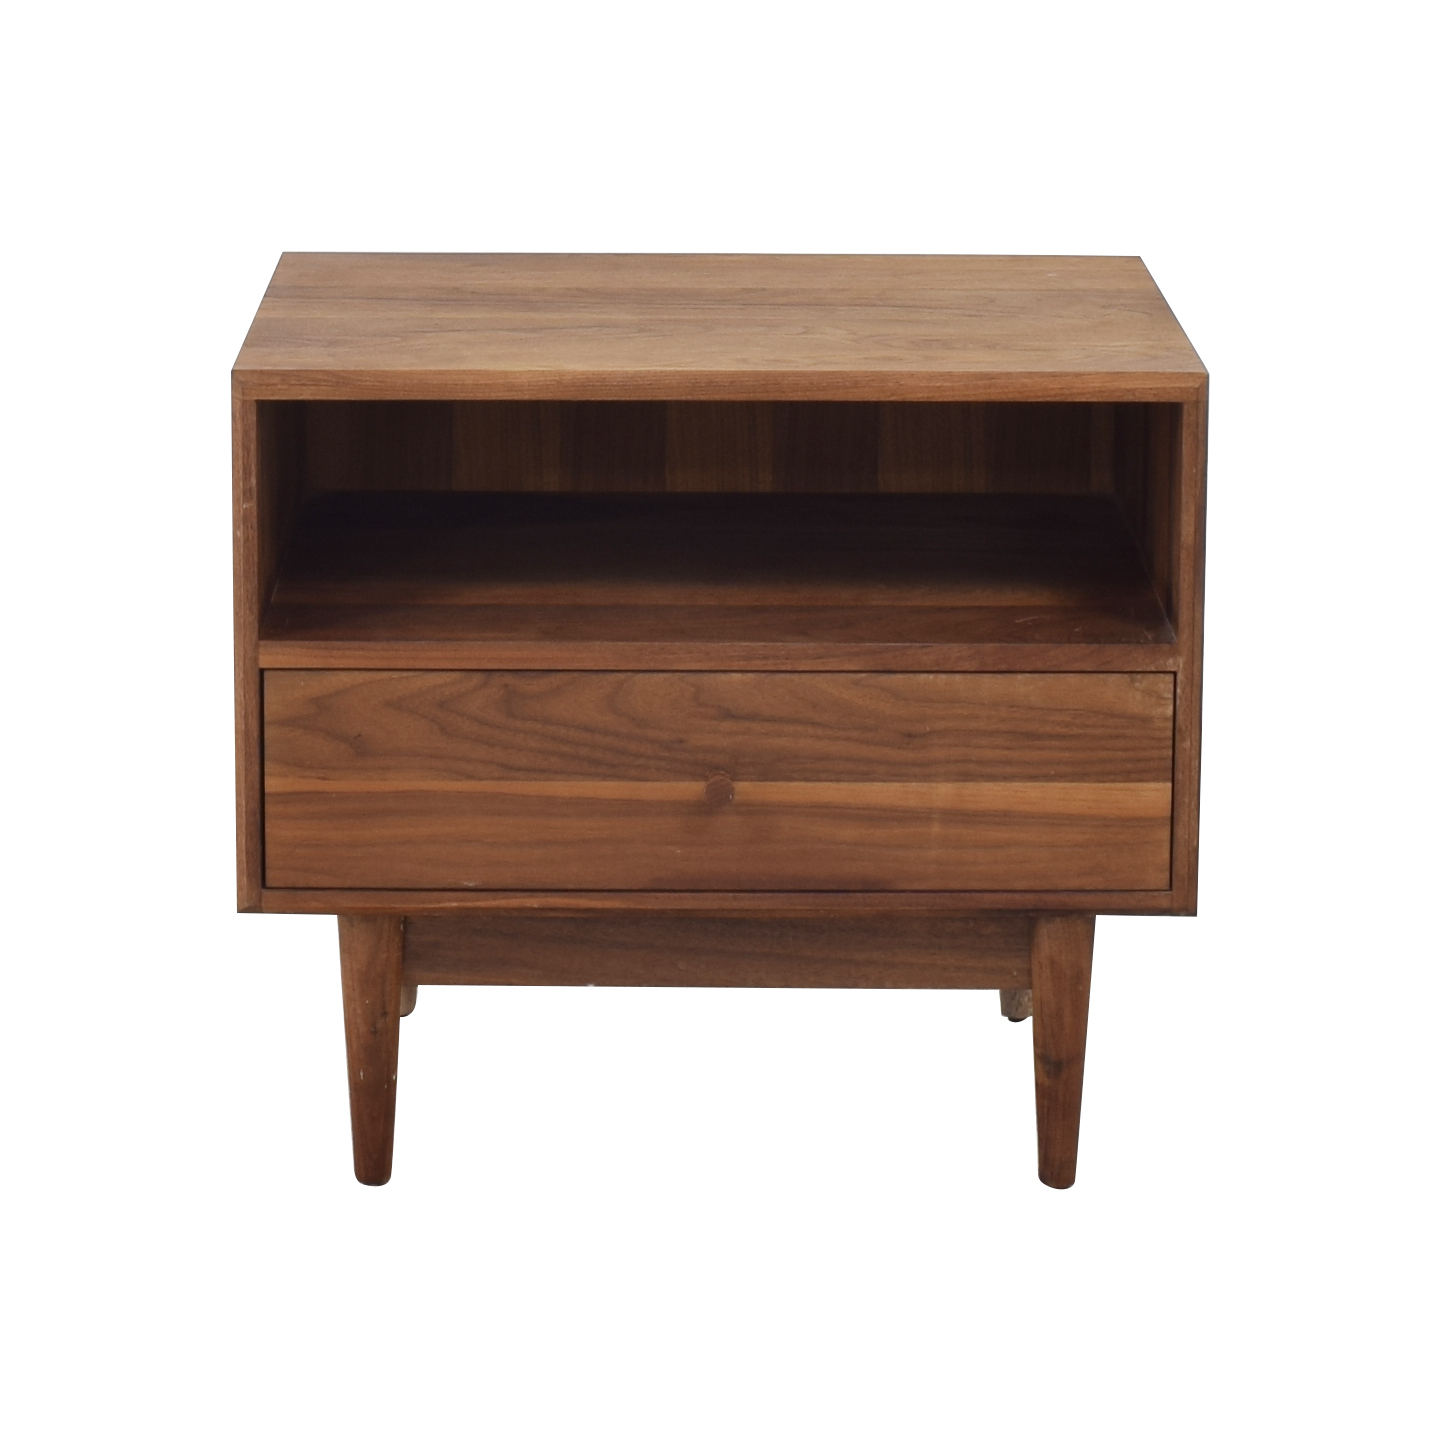 Room & Board Grove Nightstand / End Tables